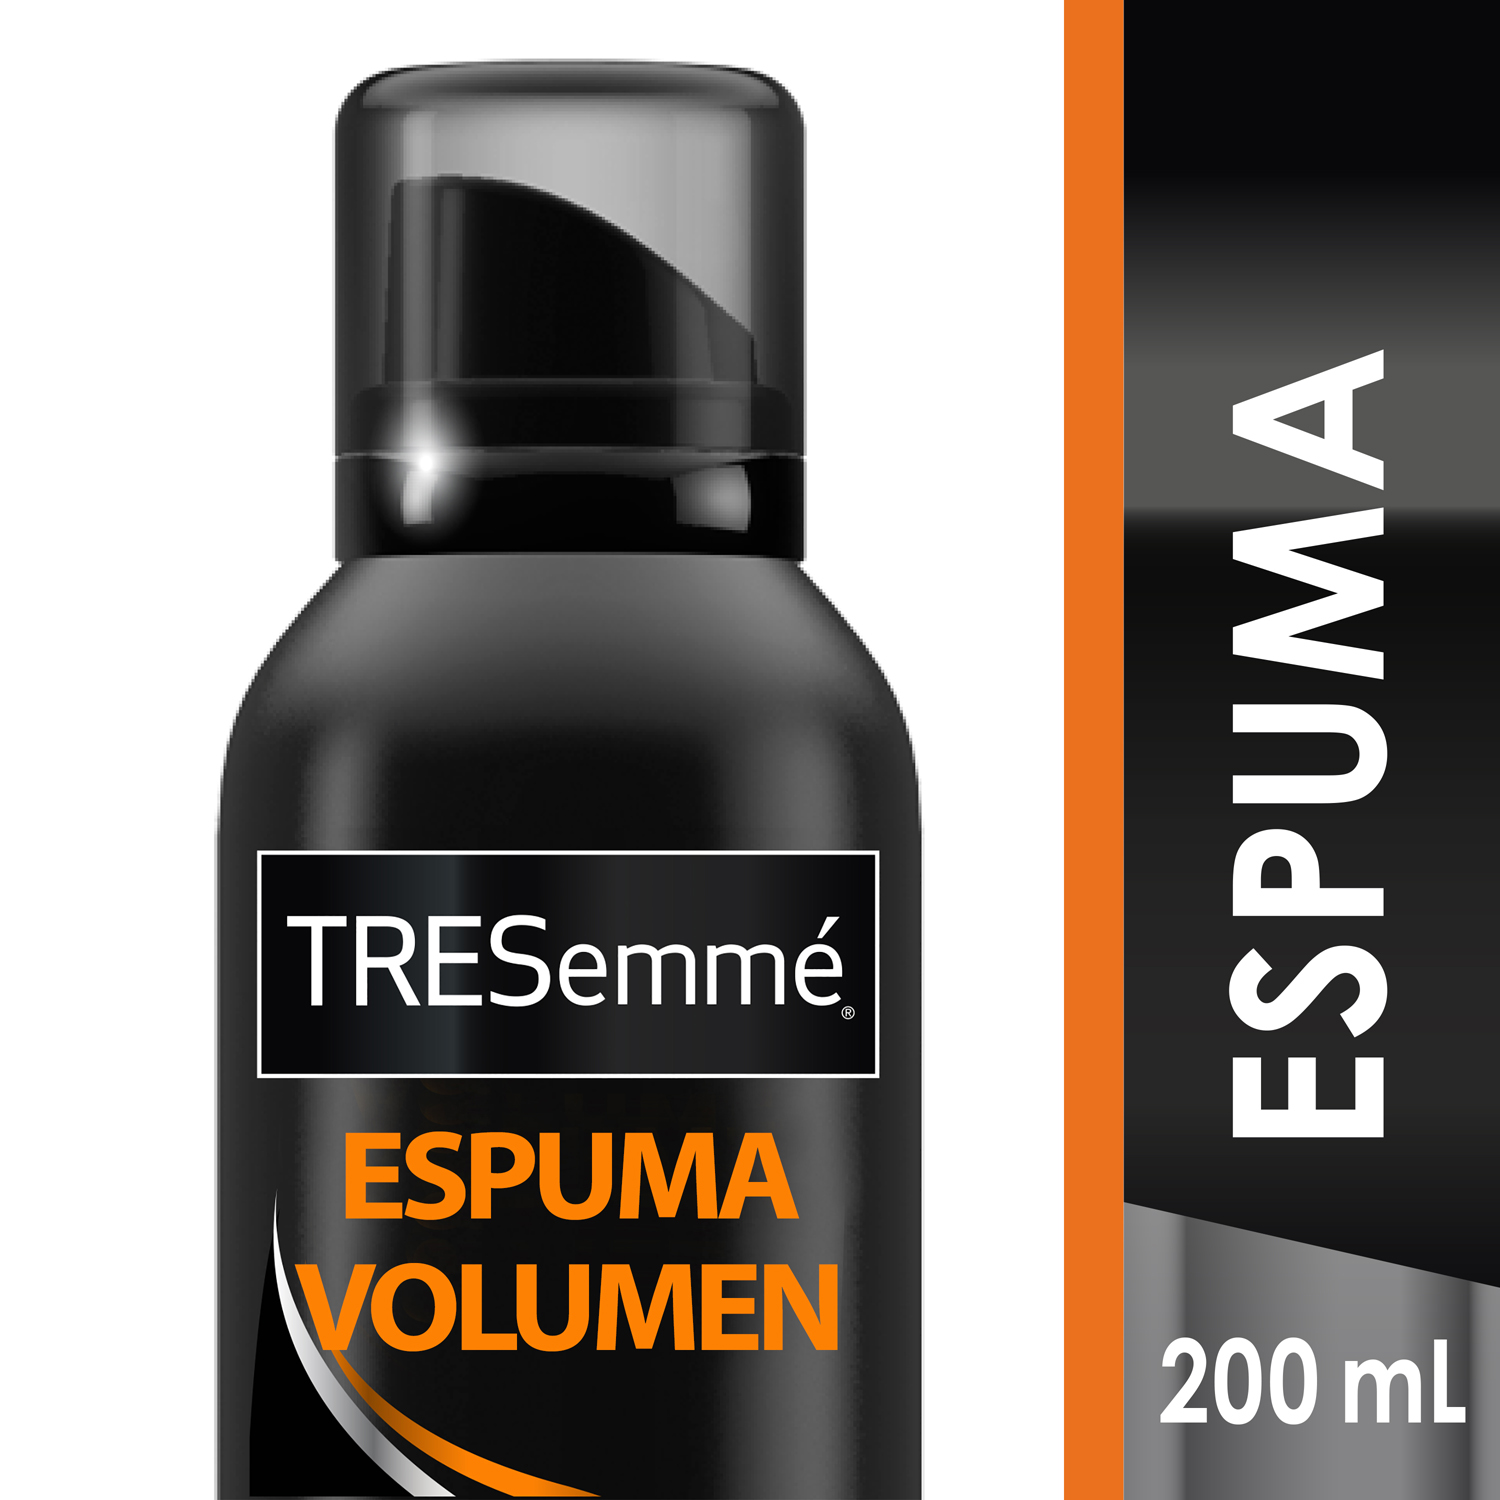 Tresemmé espuma volumen antihumedad 24h de 20cl. en spray